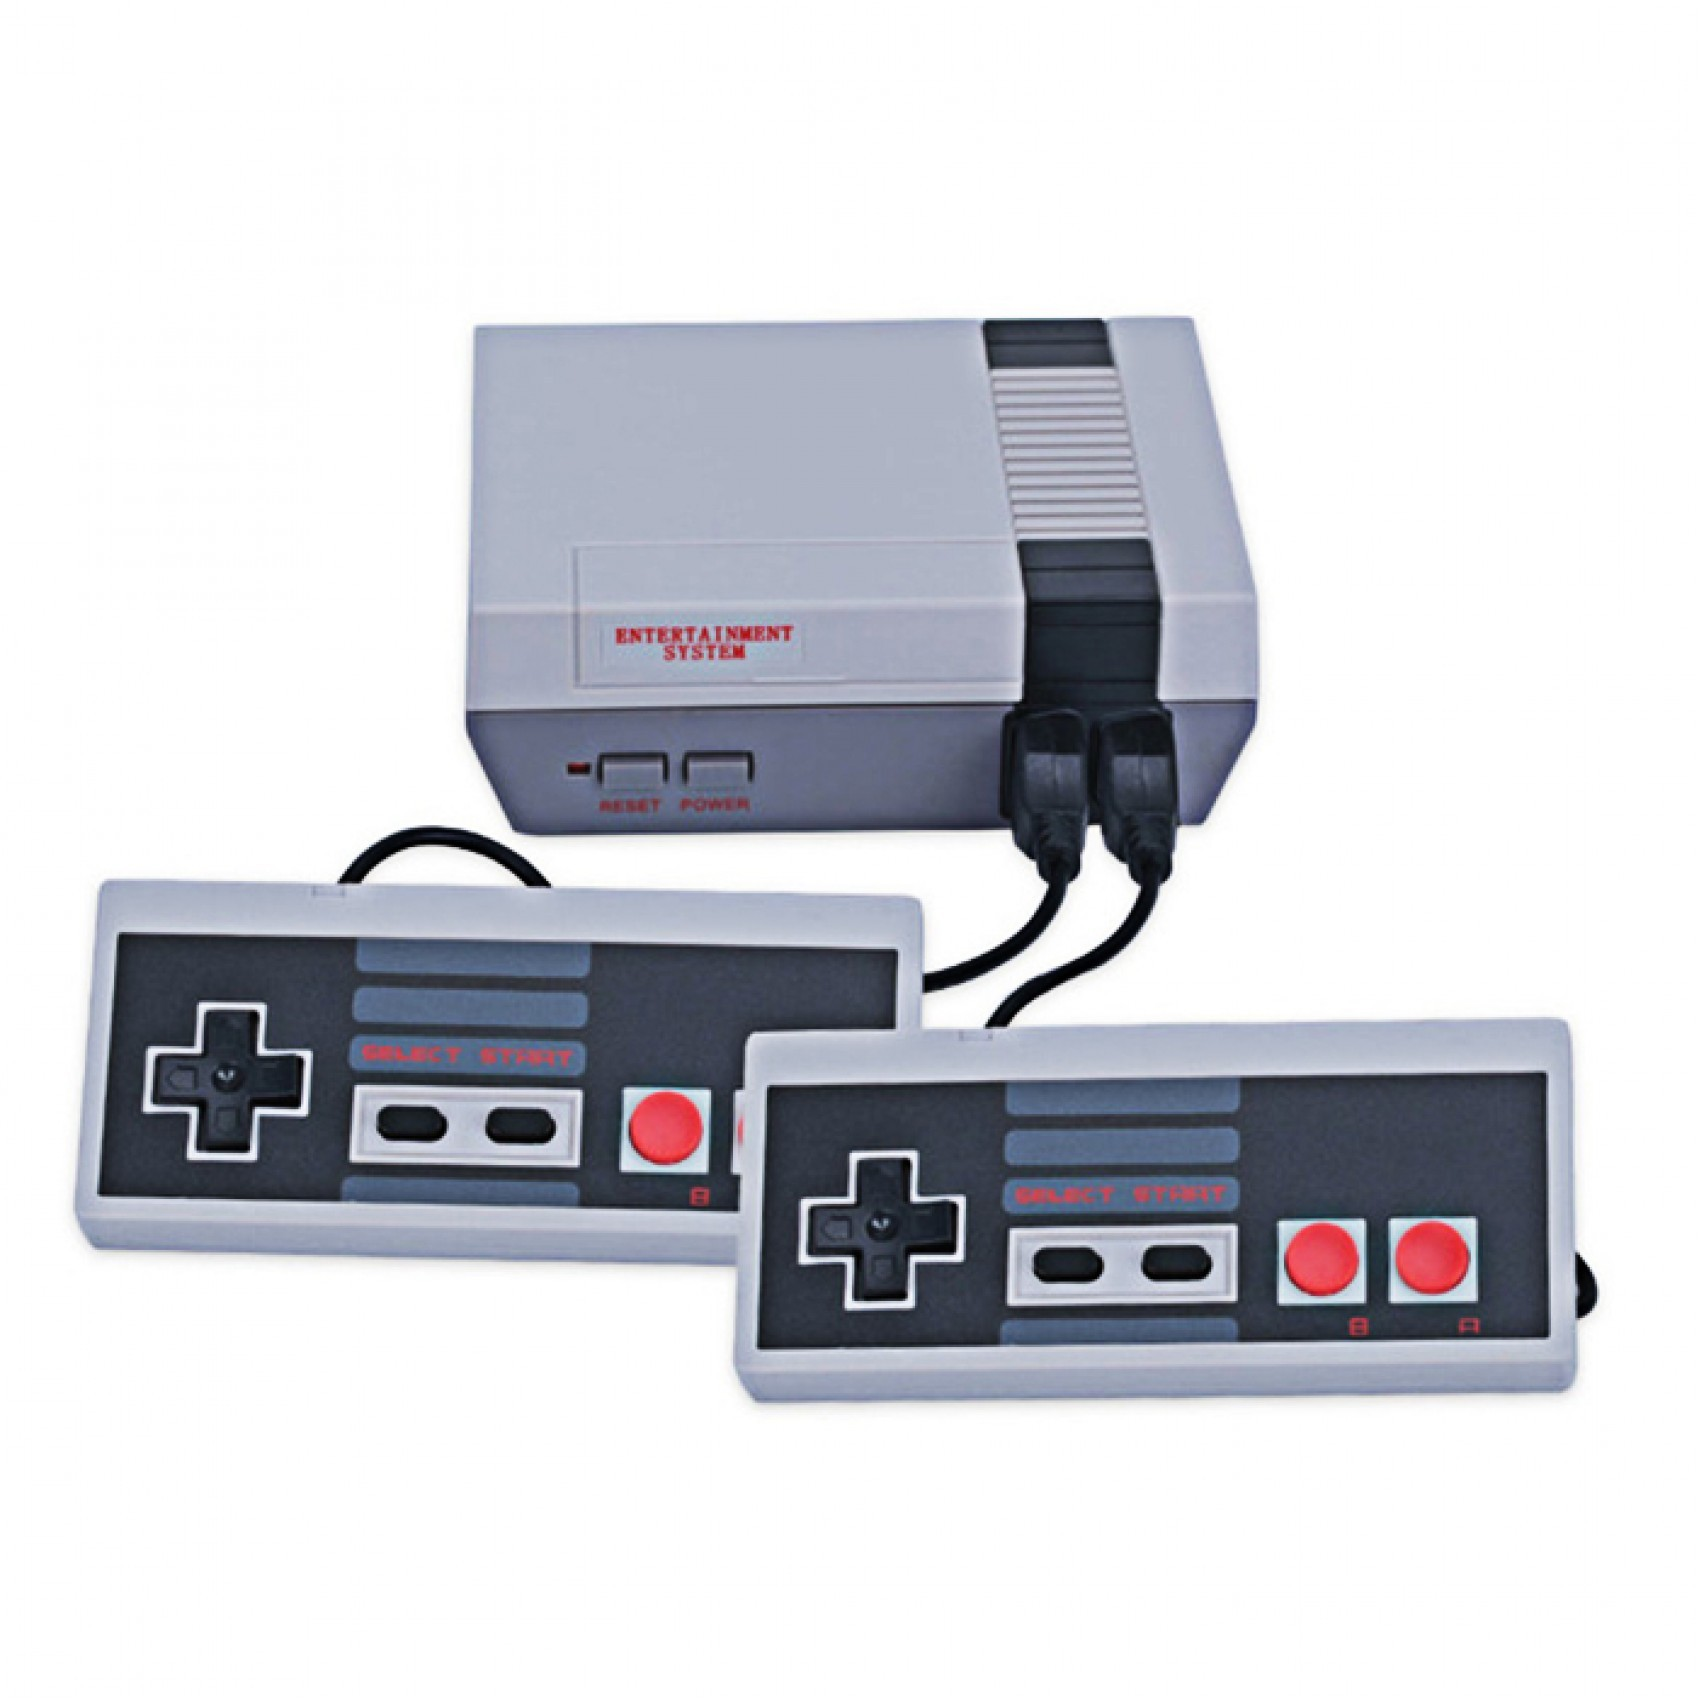 NES Mini Game Anniversary Edition Entertainment System with 620 Built-In Classic Games - White